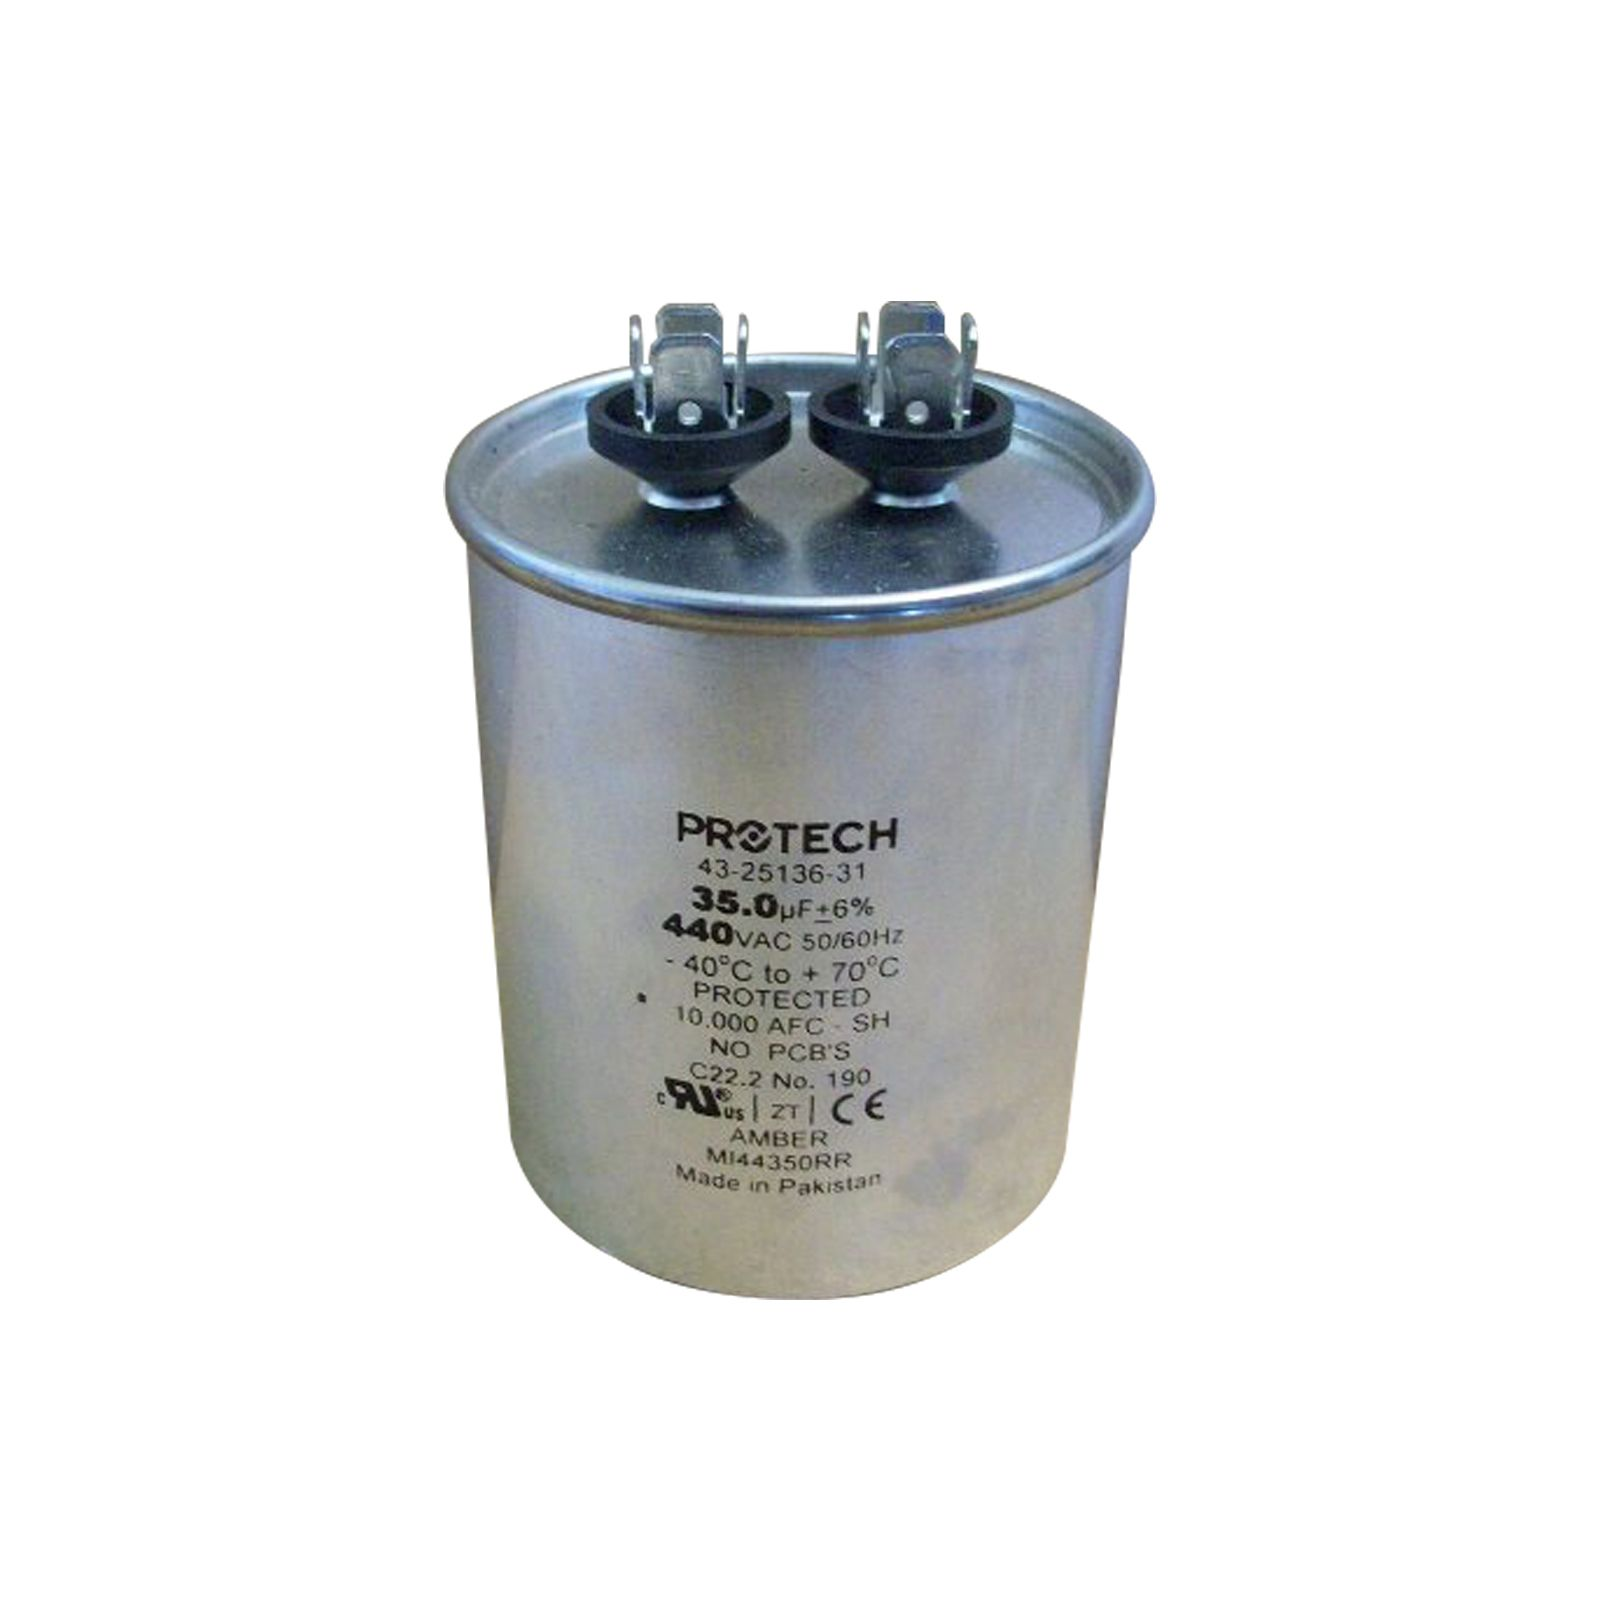 PROTECH 43-25136-31 - Capacitor - 35/440 Single Round